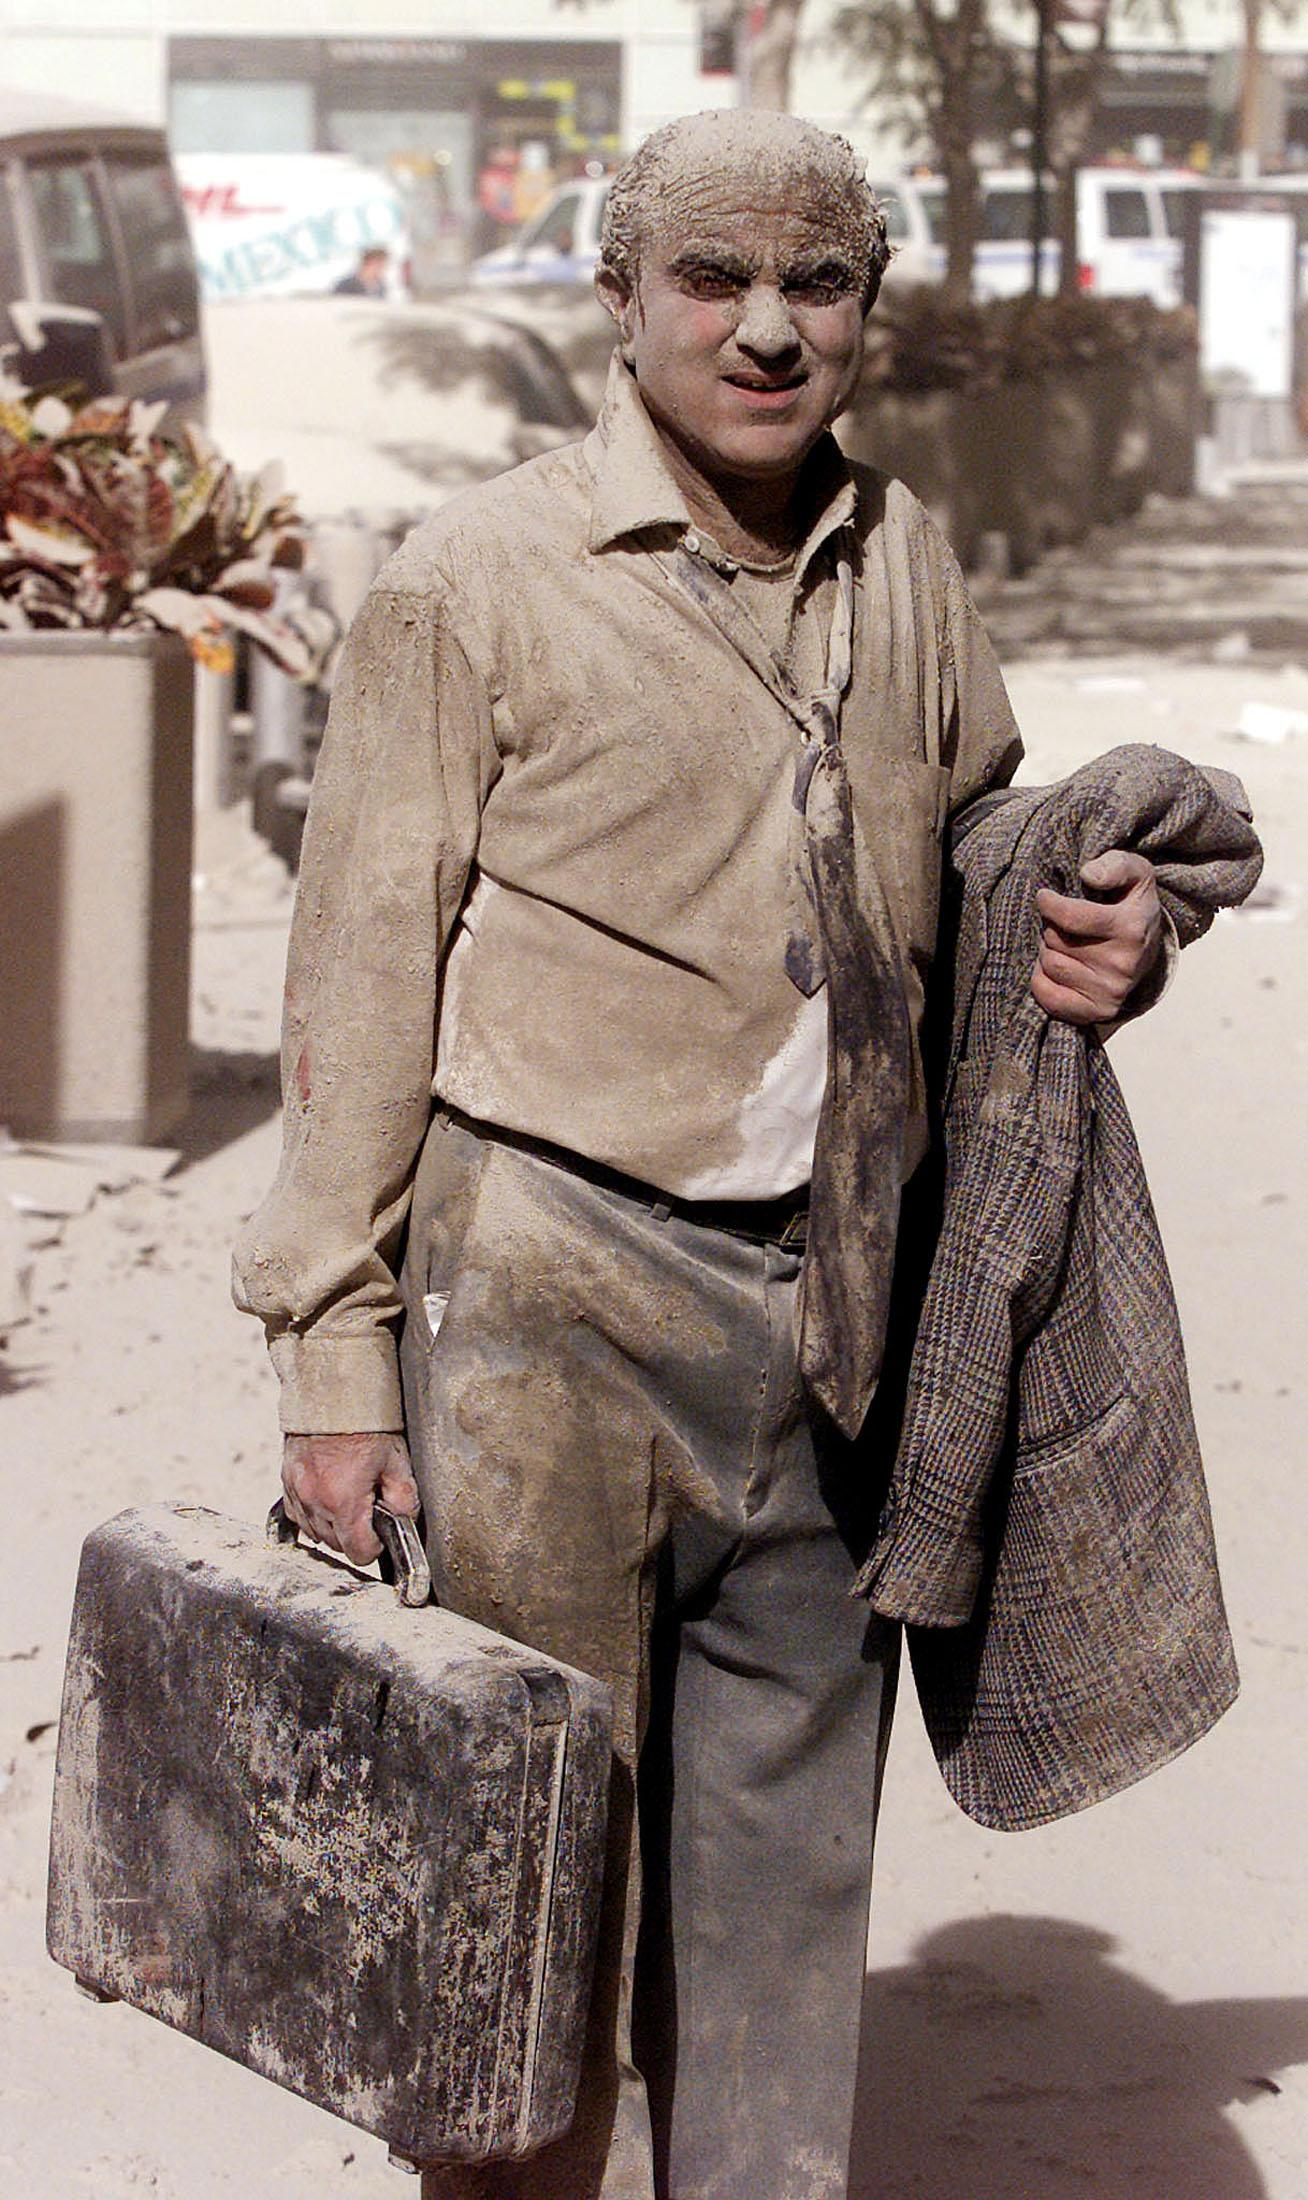 """A man covered in dust walks in the street near the site of the World Trade Center towers in New York City, in this file photo taken early September 11, 2001. This year's anniversary of the September 11 attacks in New York and Washington will echo the first one, with silence for the moments the planes struck and when the buildings fell, and the reading of 2,792 victims' names. <br><br>(REUTERS/Shannon Stapleton-Files HB)<br><br>For the full photo collection, go to <a href=""""http://www.life.com/gallery/59971/911-the-25-most-powerful-photos#index/0"""" rel=""""nofollow noopener"""" target=""""_blank"""" data-ylk=""""slk:LIFE.com"""" class=""""link rapid-noclick-resp"""">LIFE.com</a>"""